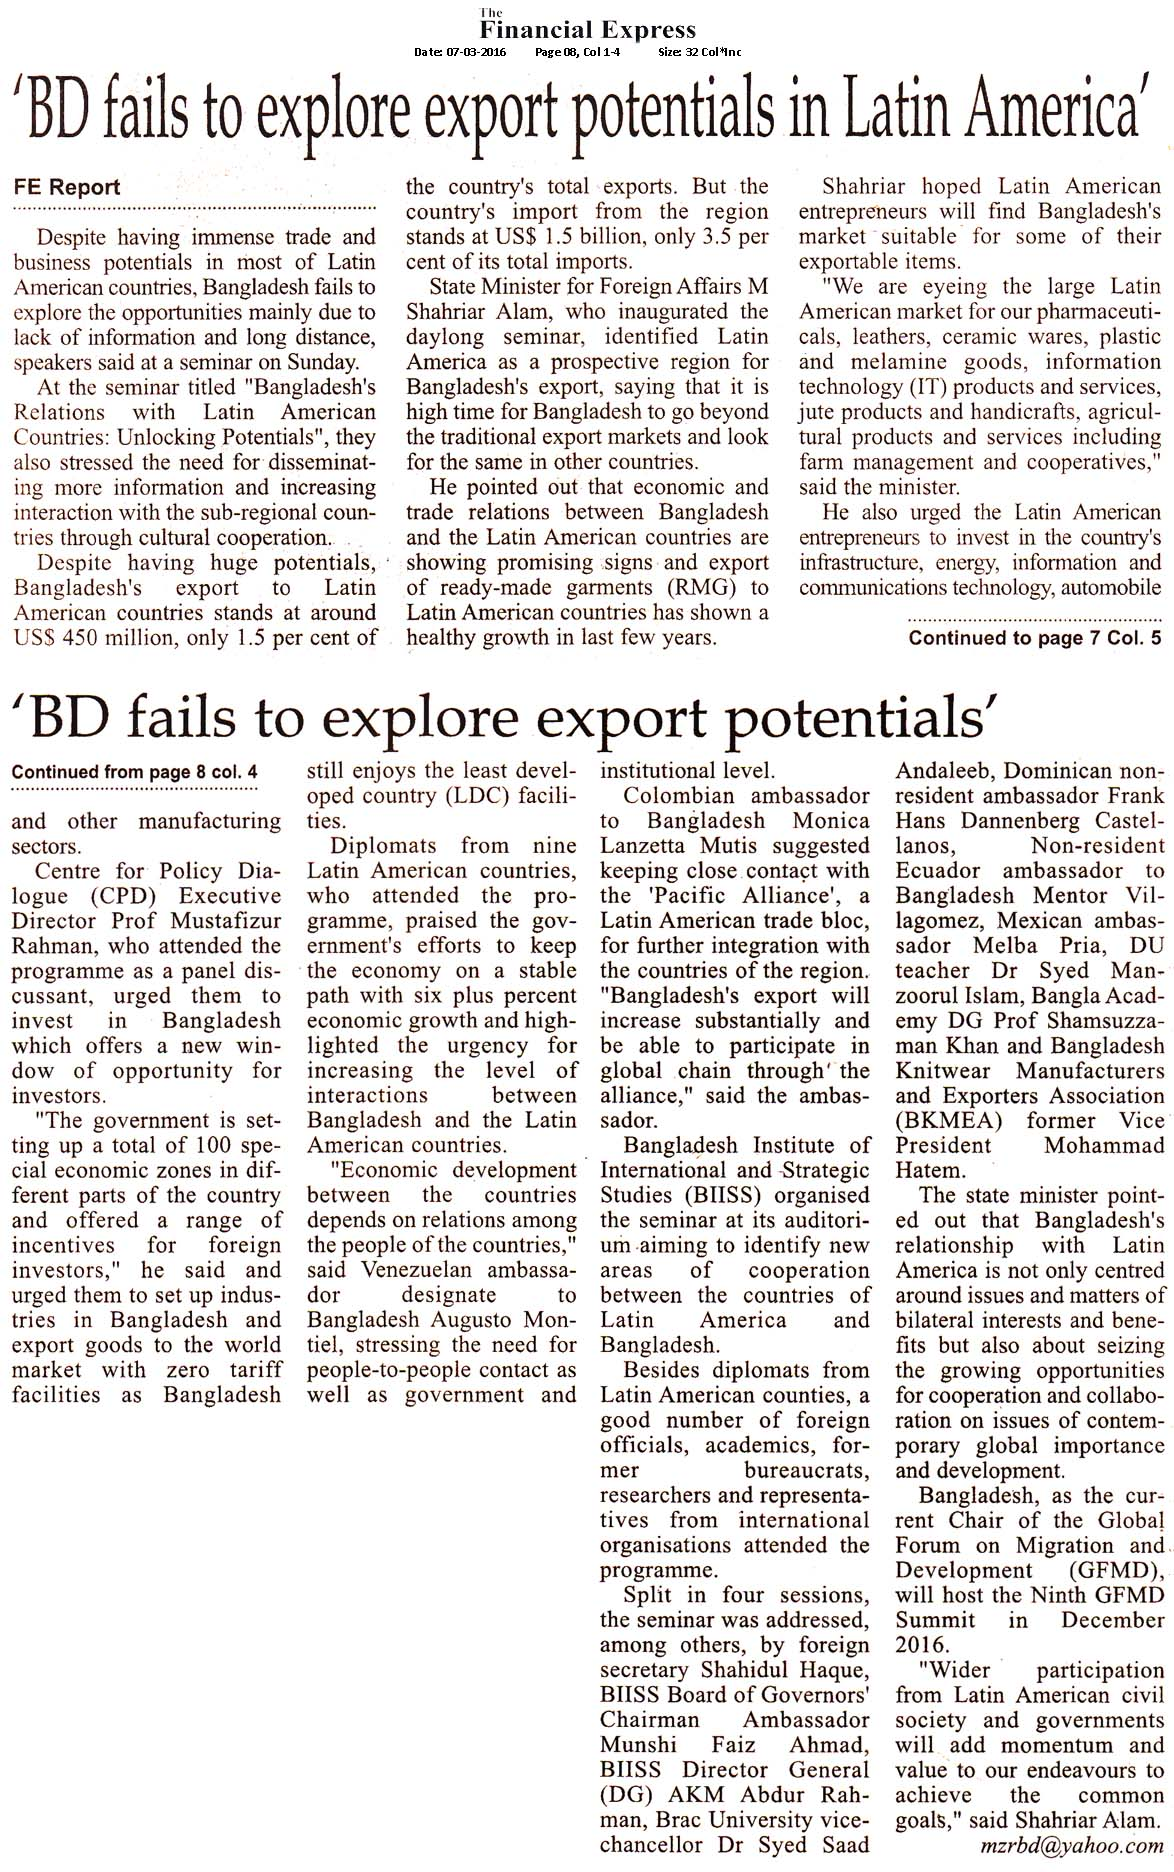 Financial Express, Page 08, March 07, 2016